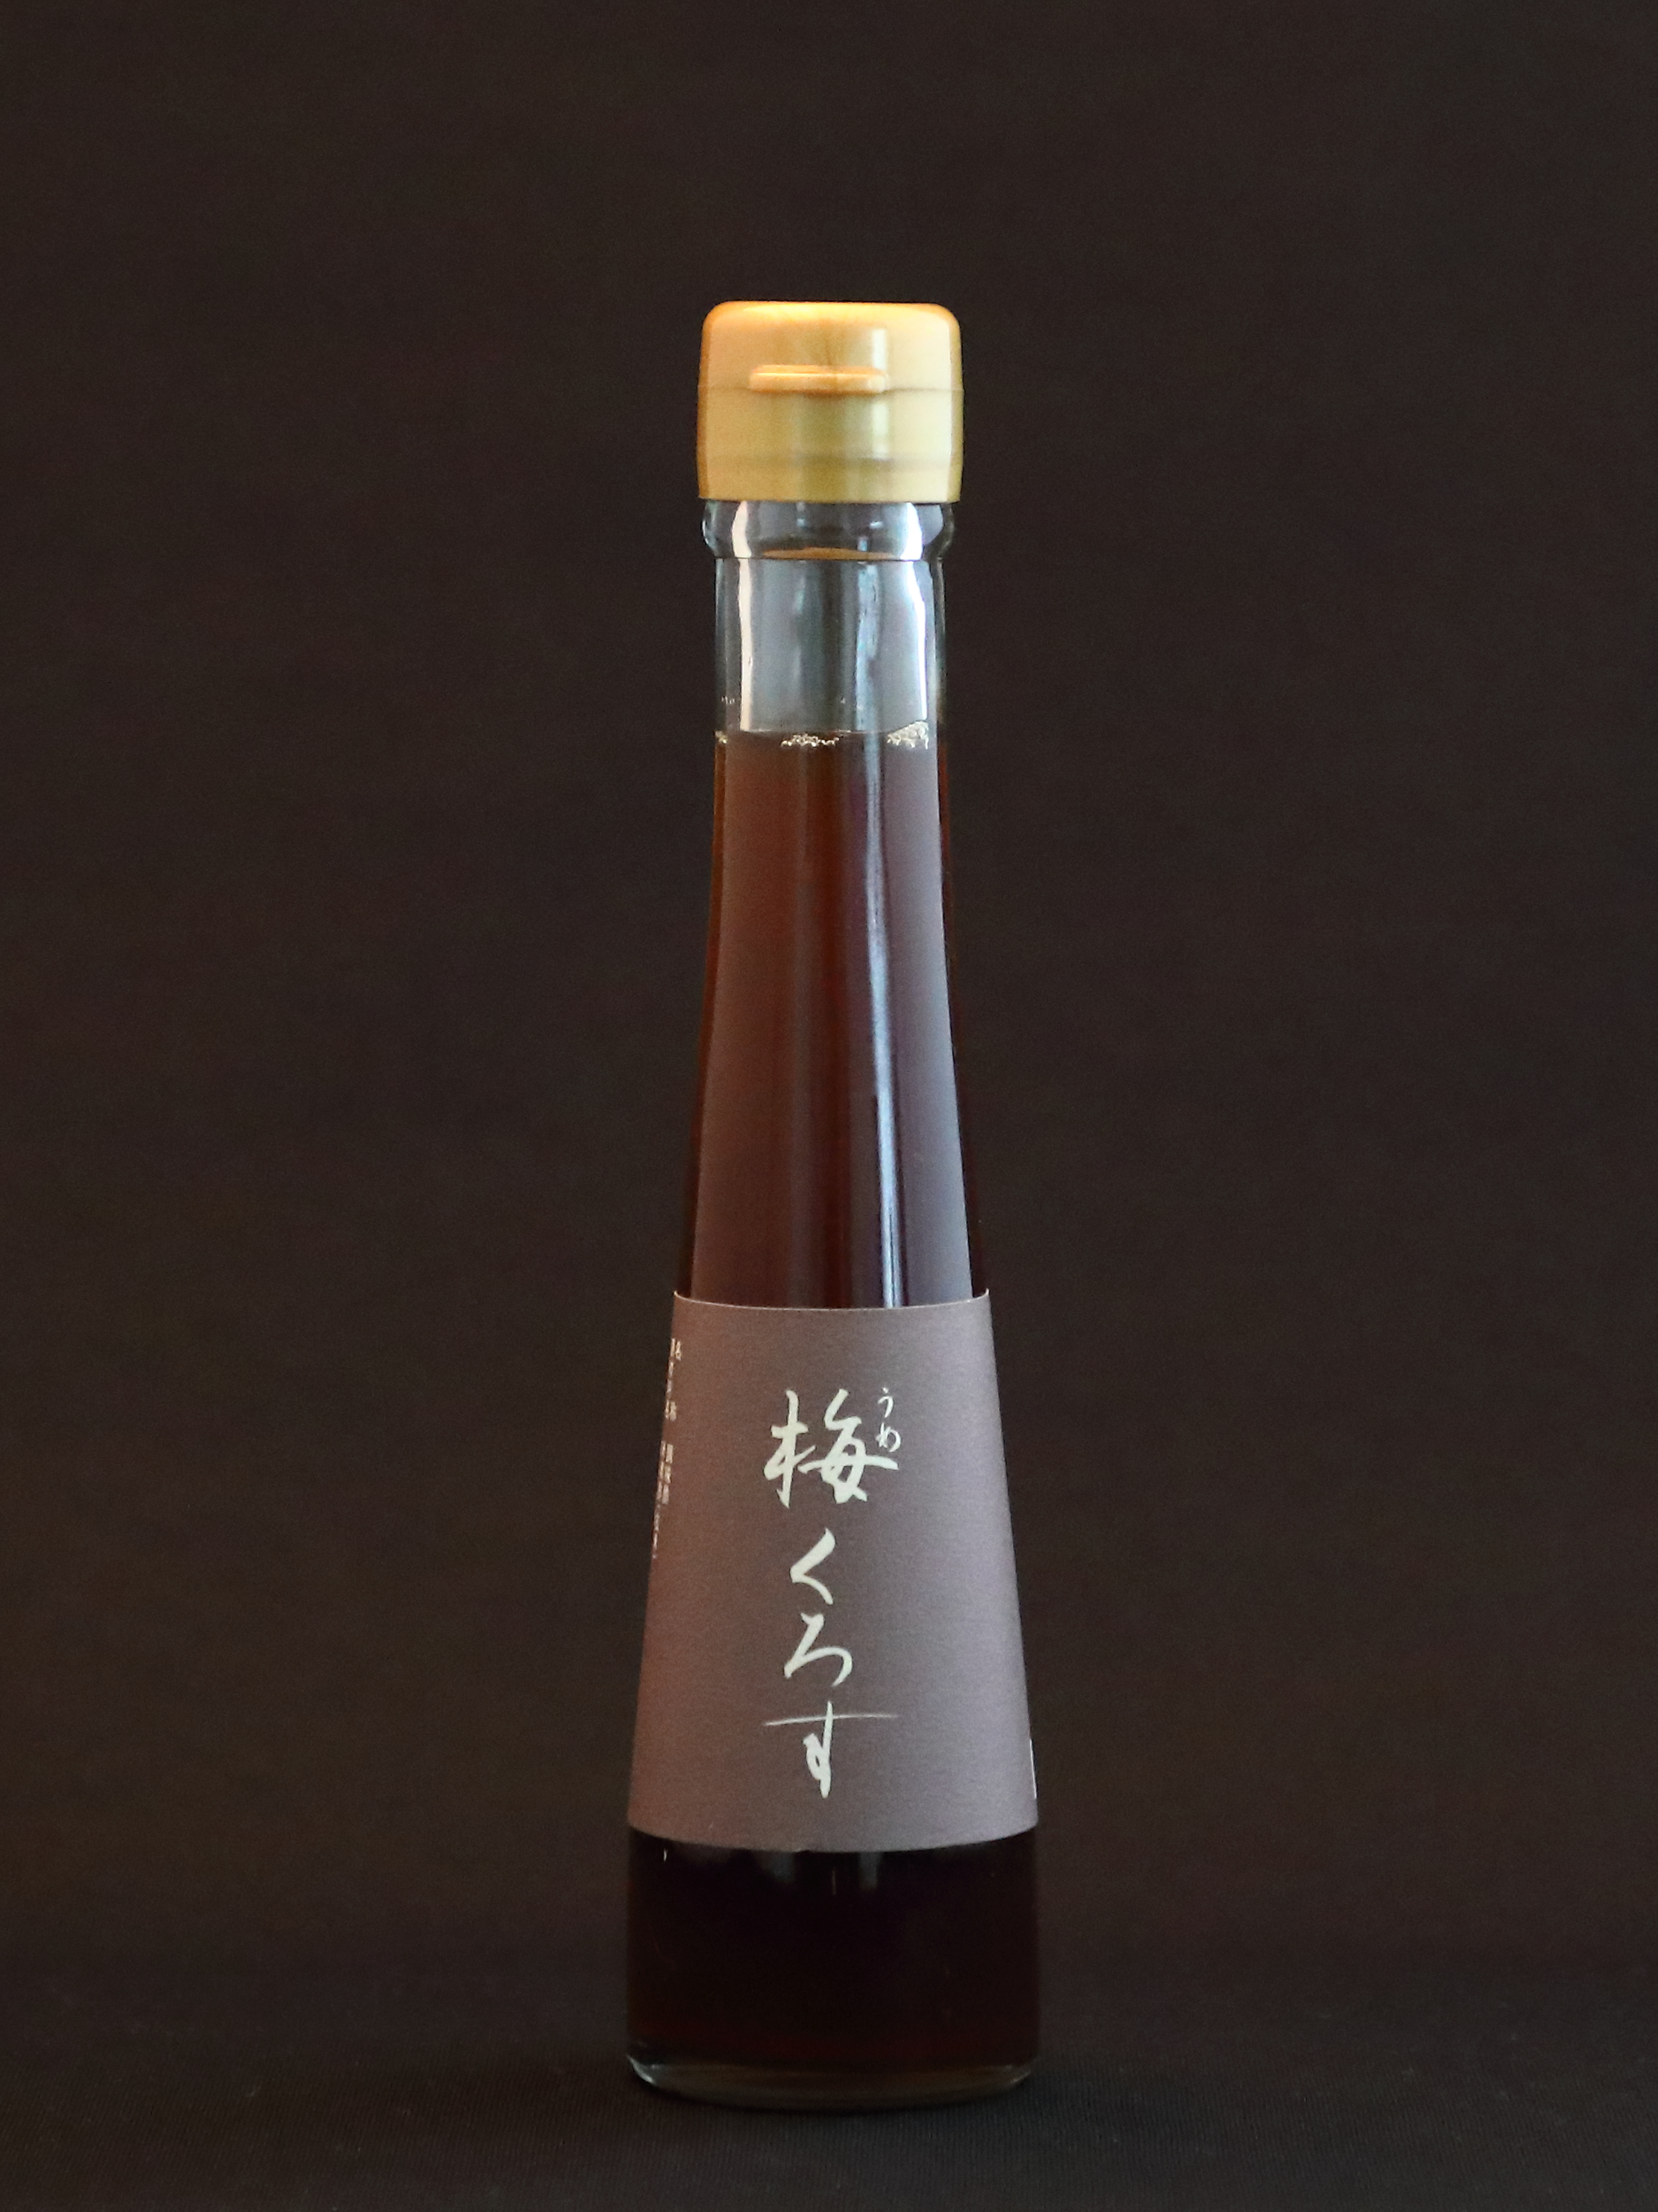 Umesu (Sour Plum Vinegar) - Made from Iio Jozo's brown rice vinegar (genmai kurosu), sour ume plums, and raw sugar, this vinegar tames the extreme sourness of Japanese ume plums and gives their flavor depth and richness. It can be used in classical Japanese sunomono dishes and, like Iio Jozo's sweet potato vinegar, should be experimented with in drinks, dressings, vegetable dishes, fruit salads, and desserts. Also use it to brighten pork and game meat dishes.